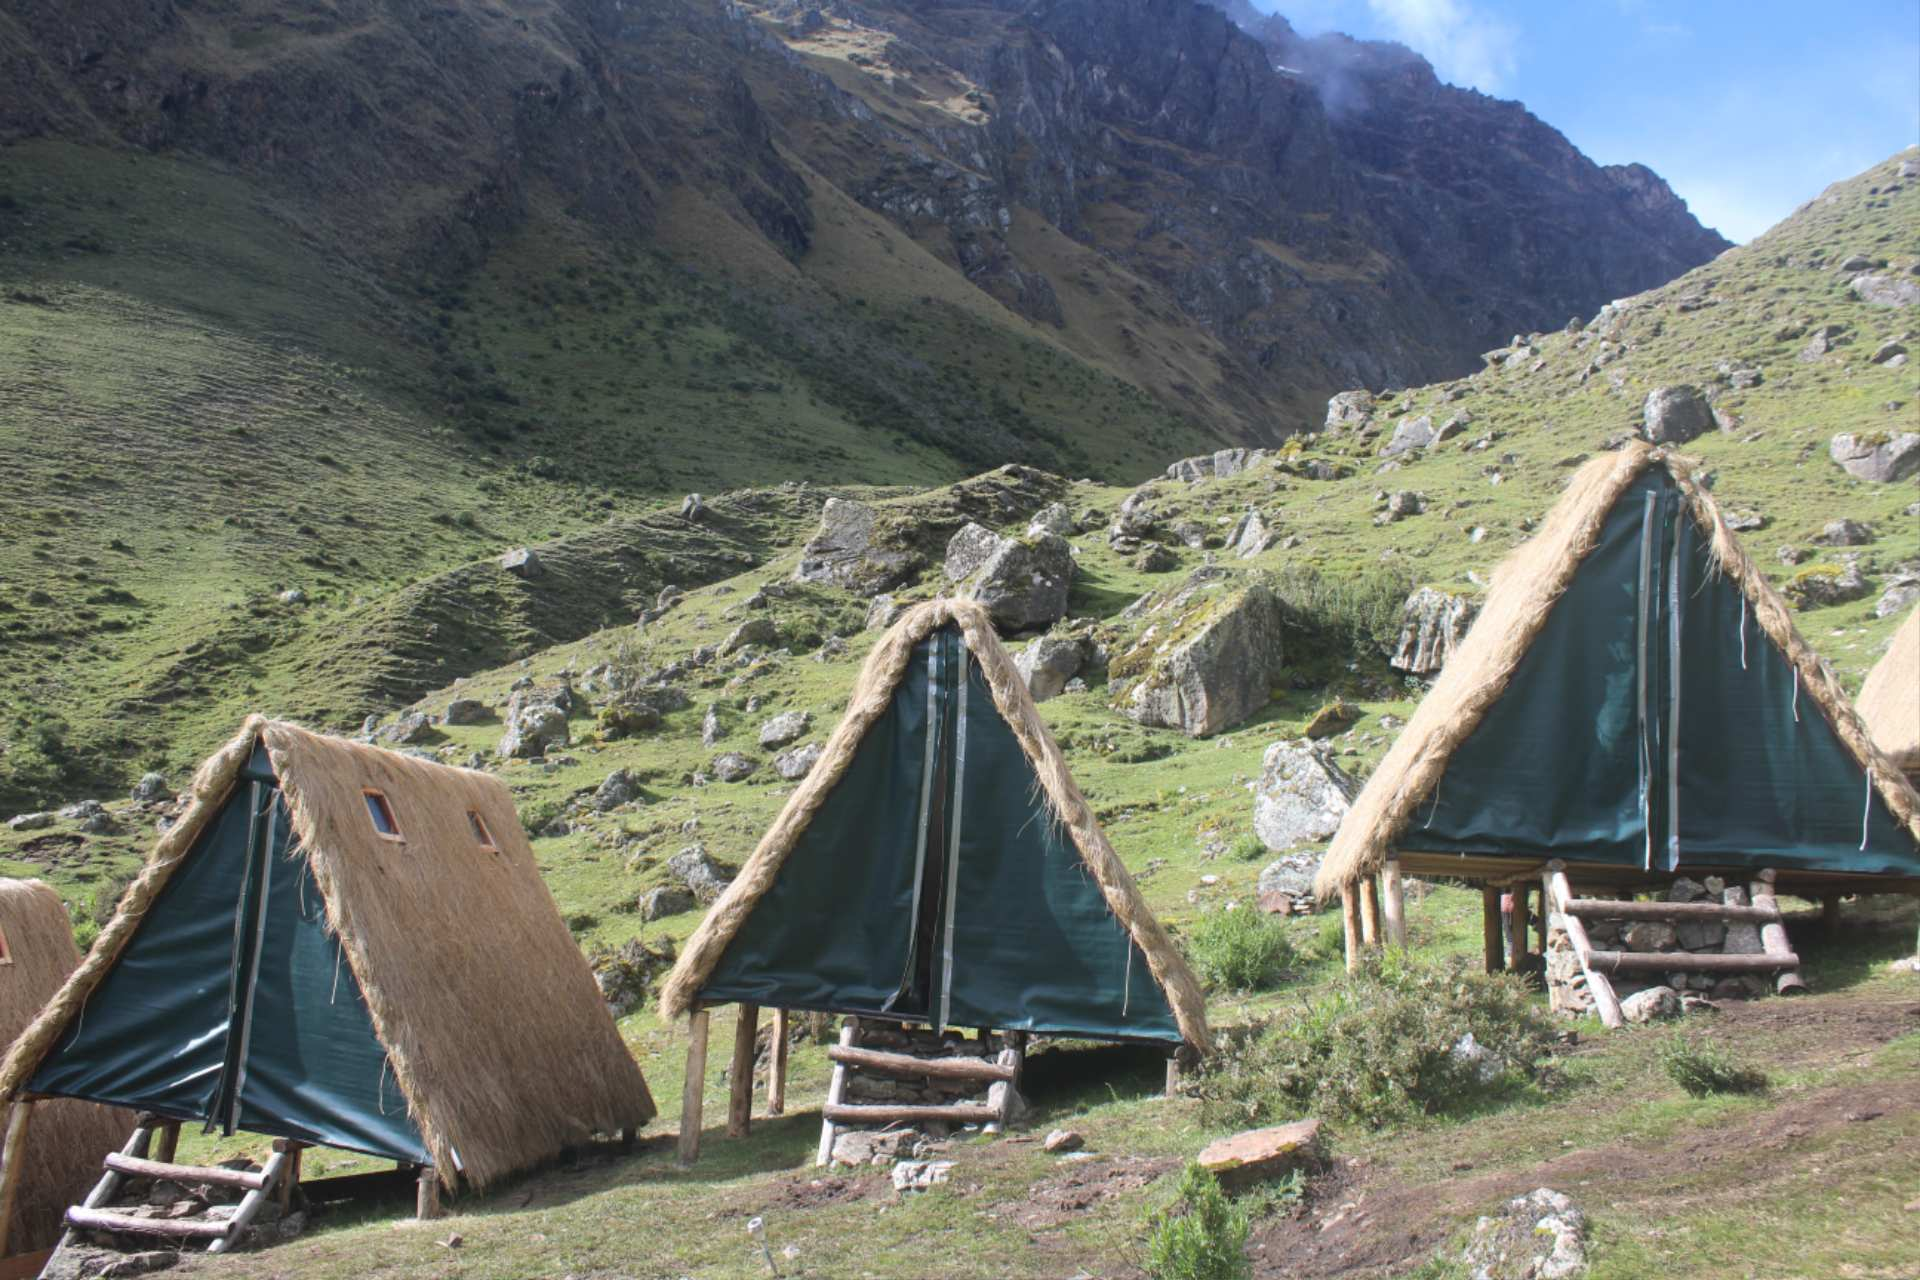 Simple huts like these in the Andes are for trekkers http://infromtheoutpost.com